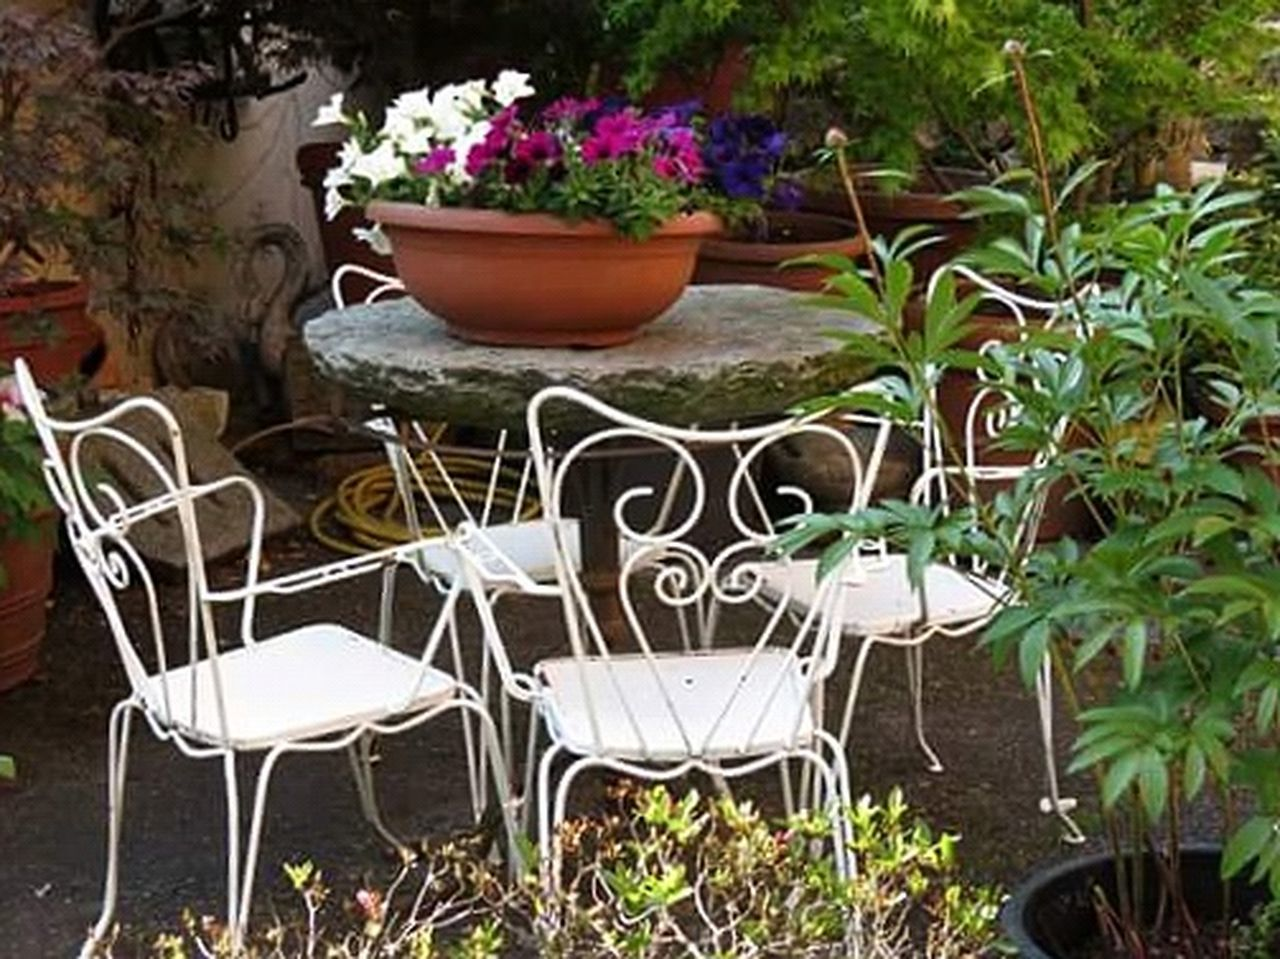 flower, potted plant, plant, front or back yard, growth, flowerbed, outdoors, no people, day, table, chair, nature, freshness